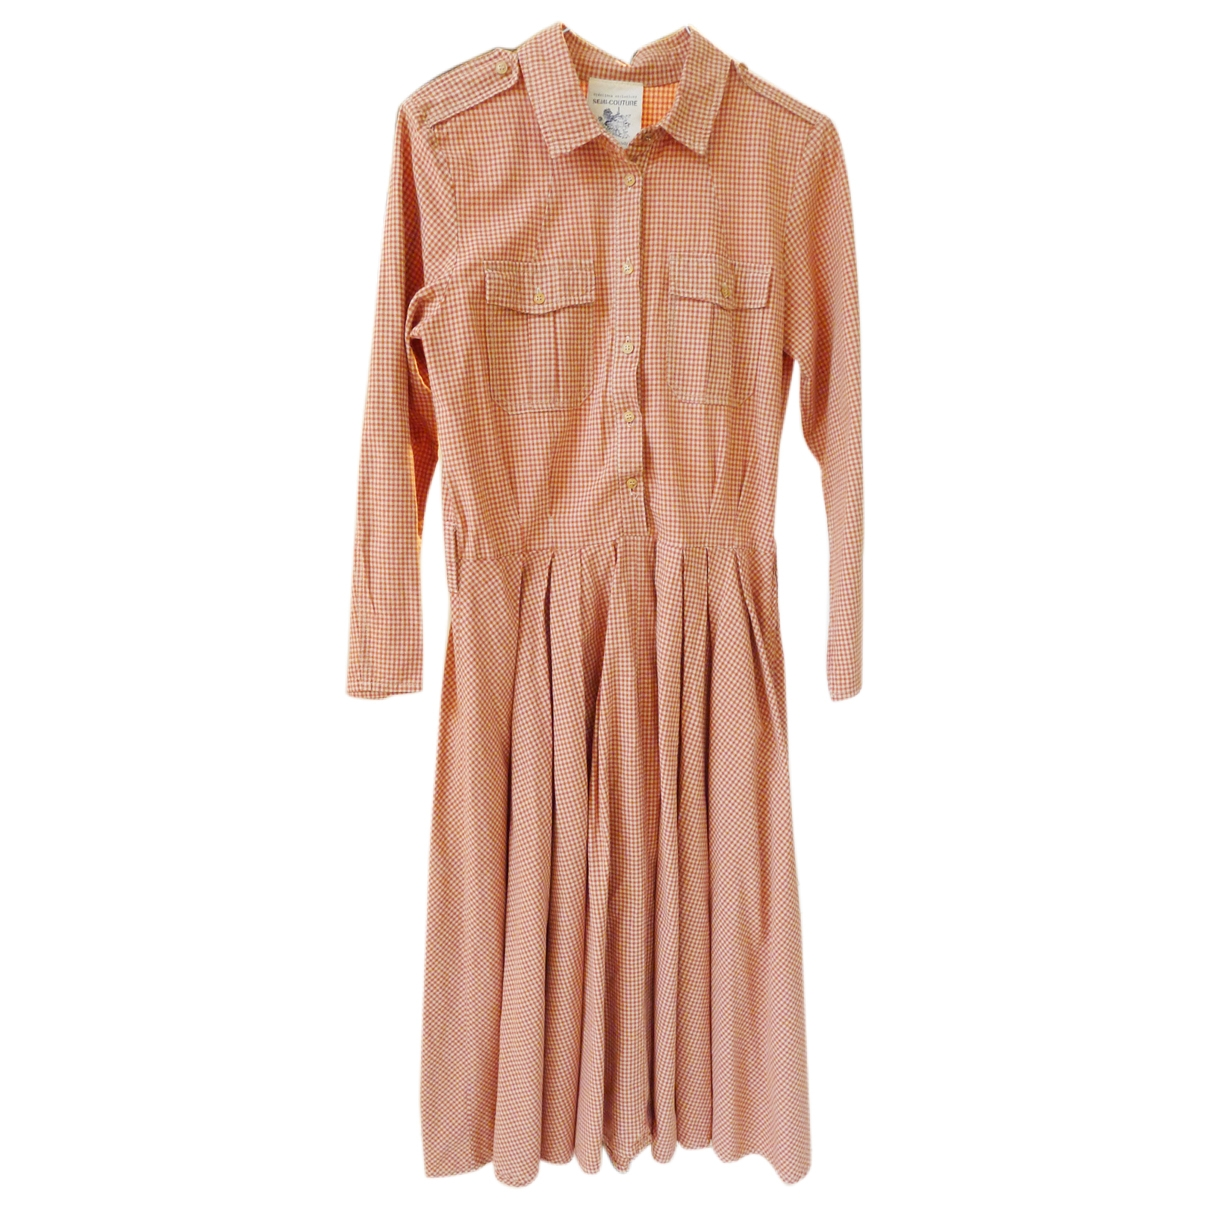 Semicouture \N Pink Cotton dress for Women 42 IT